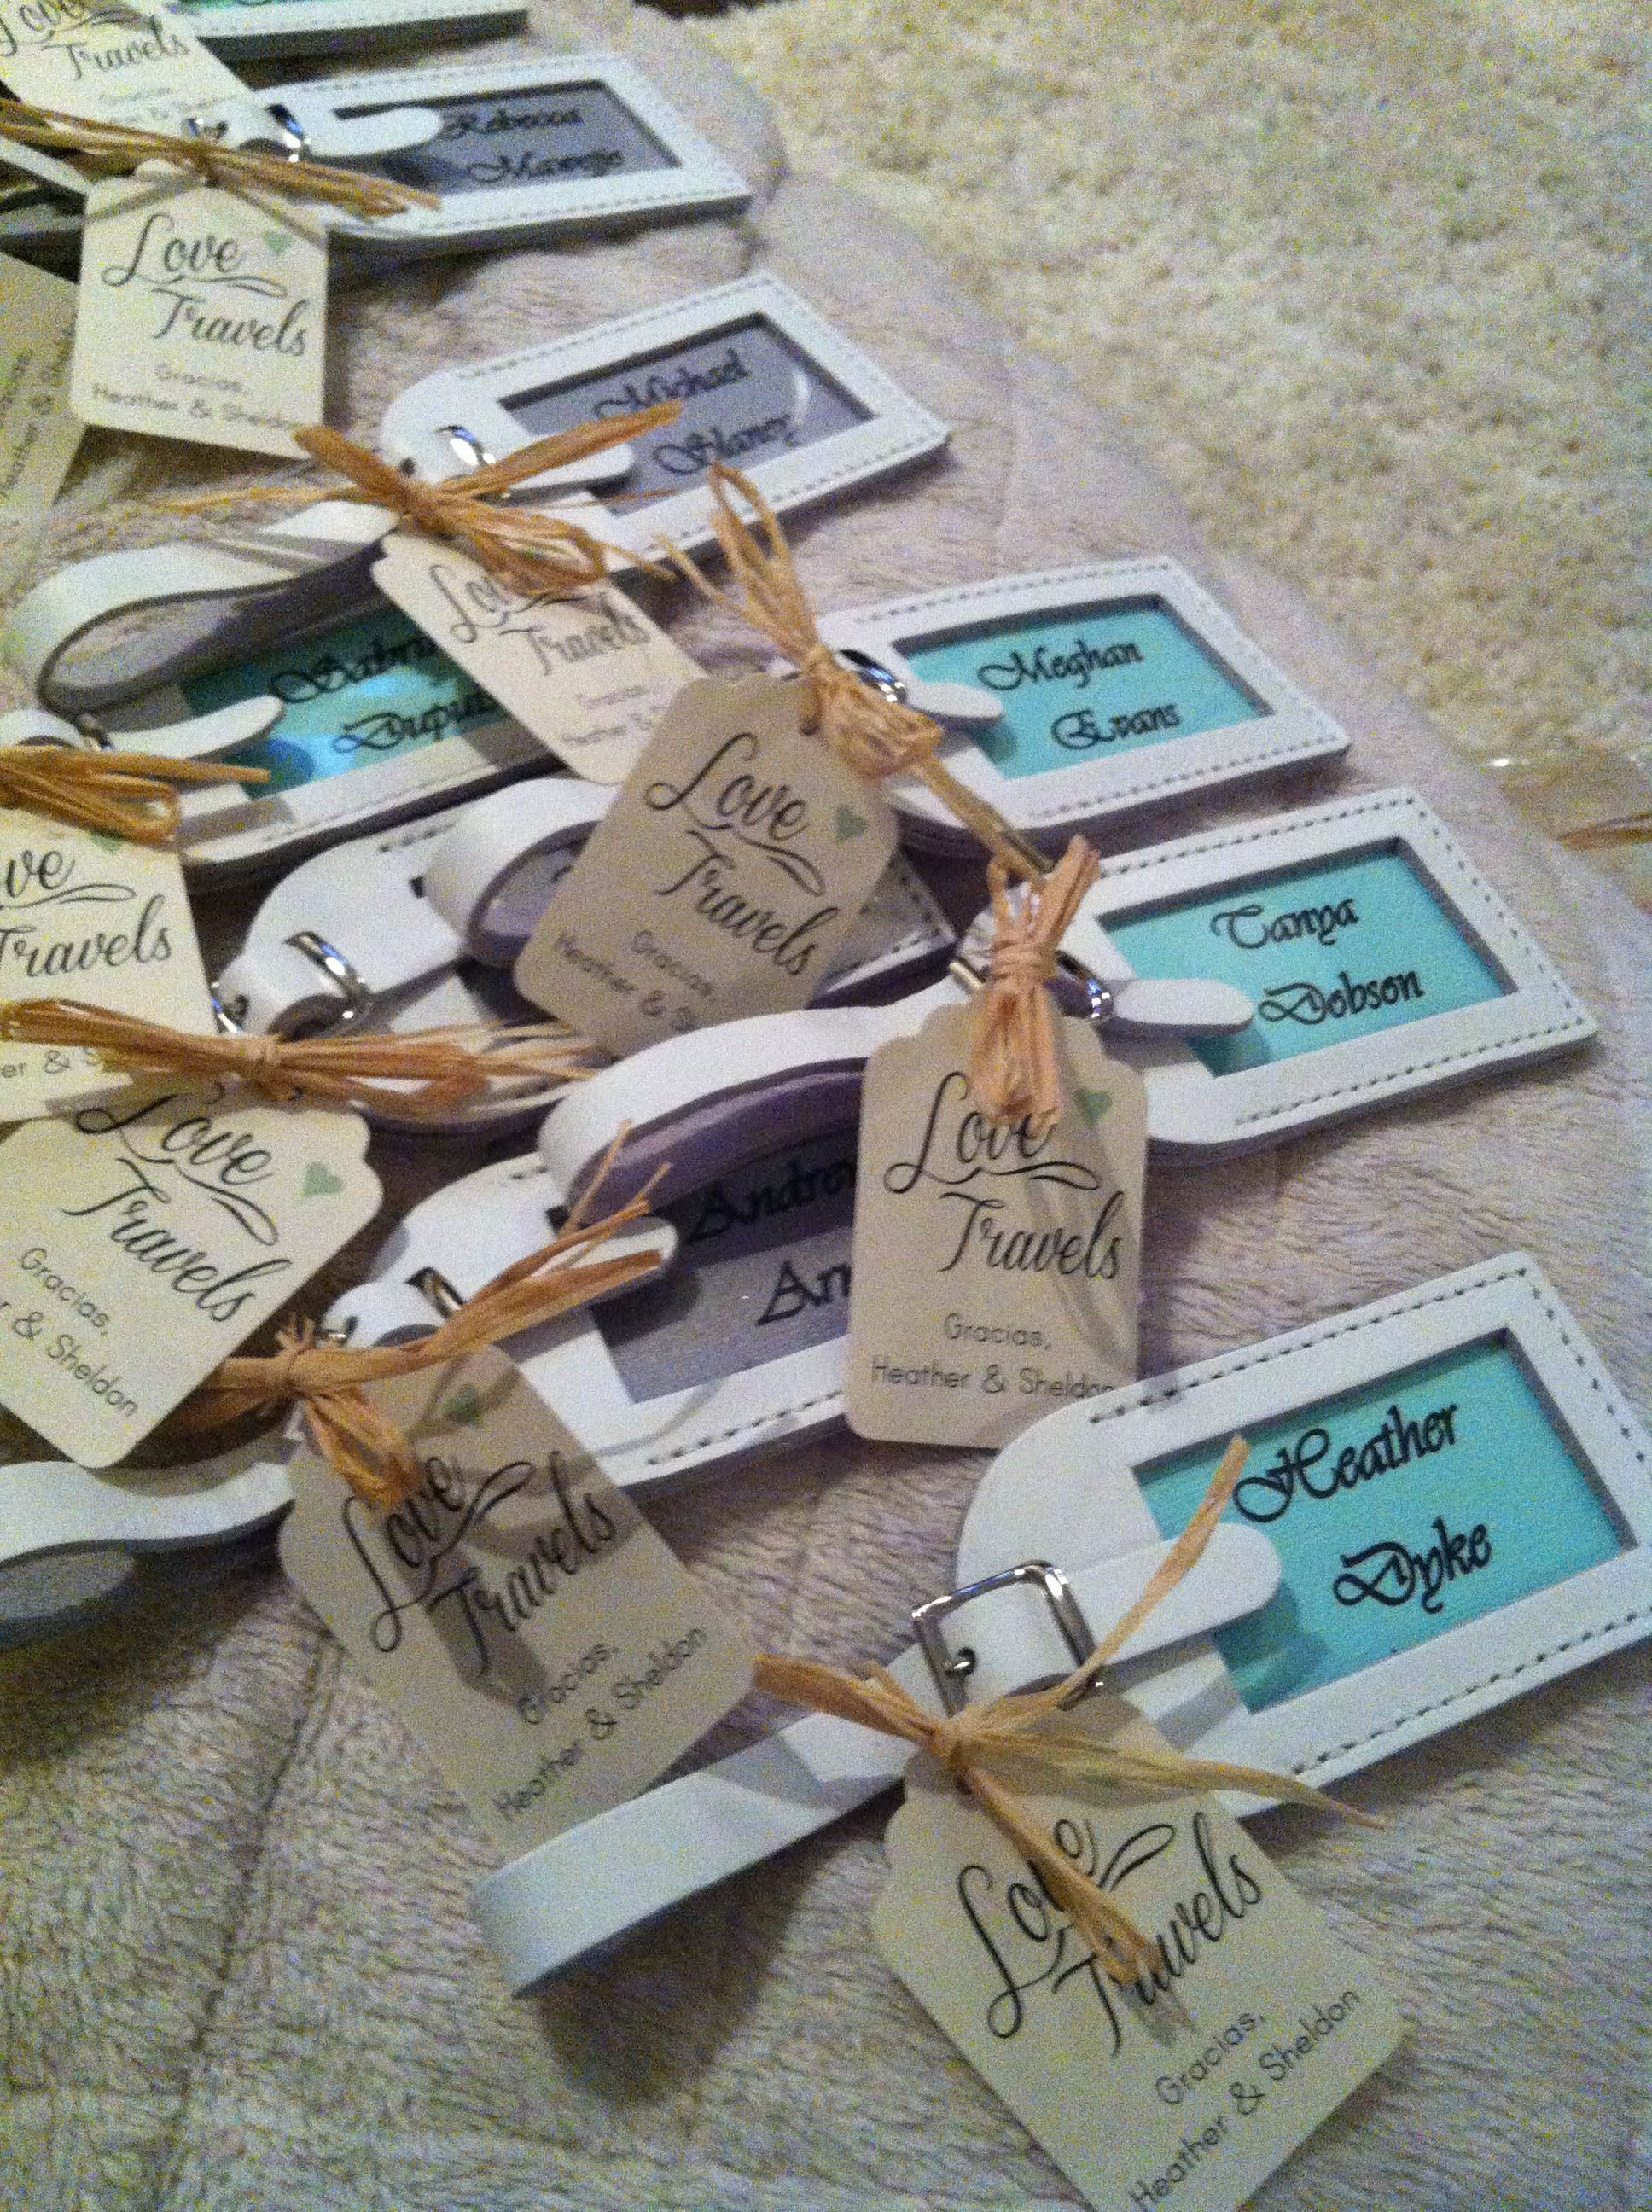 Destination wedding favors and place settings. Mint green and silver. White leather luggage tags.